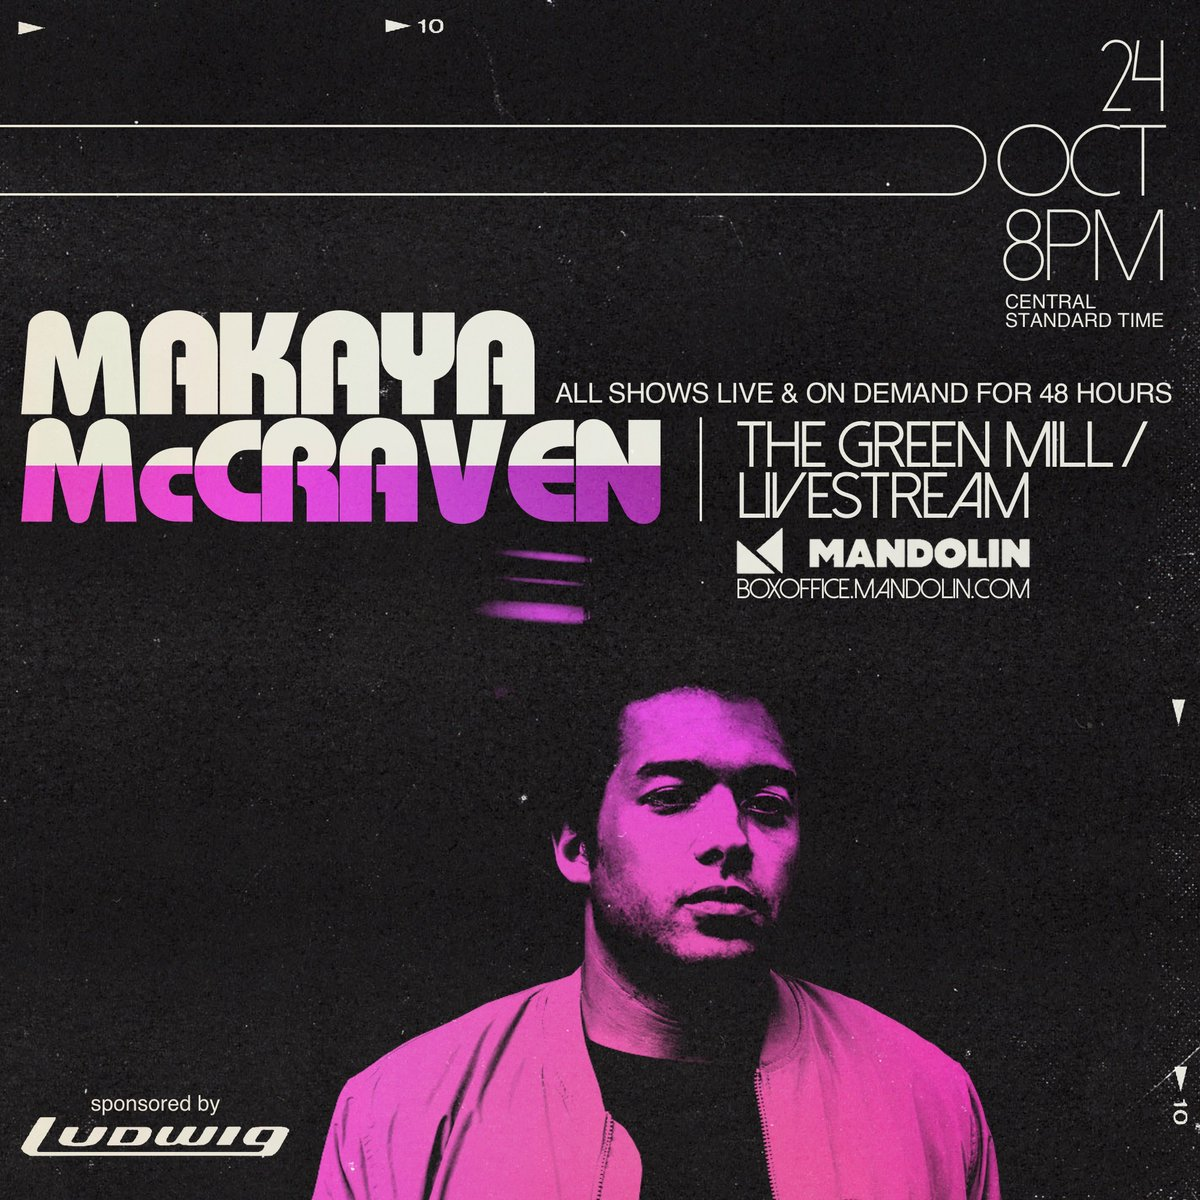 Pretty cool that we can all catch @MakayaMcCraven  at the same time, no matter where we may be on this little blue planet of ours. If the show starts too late in your neck of the woods, a 'ticket' gives you access for 48 hours.   'TICKETS':